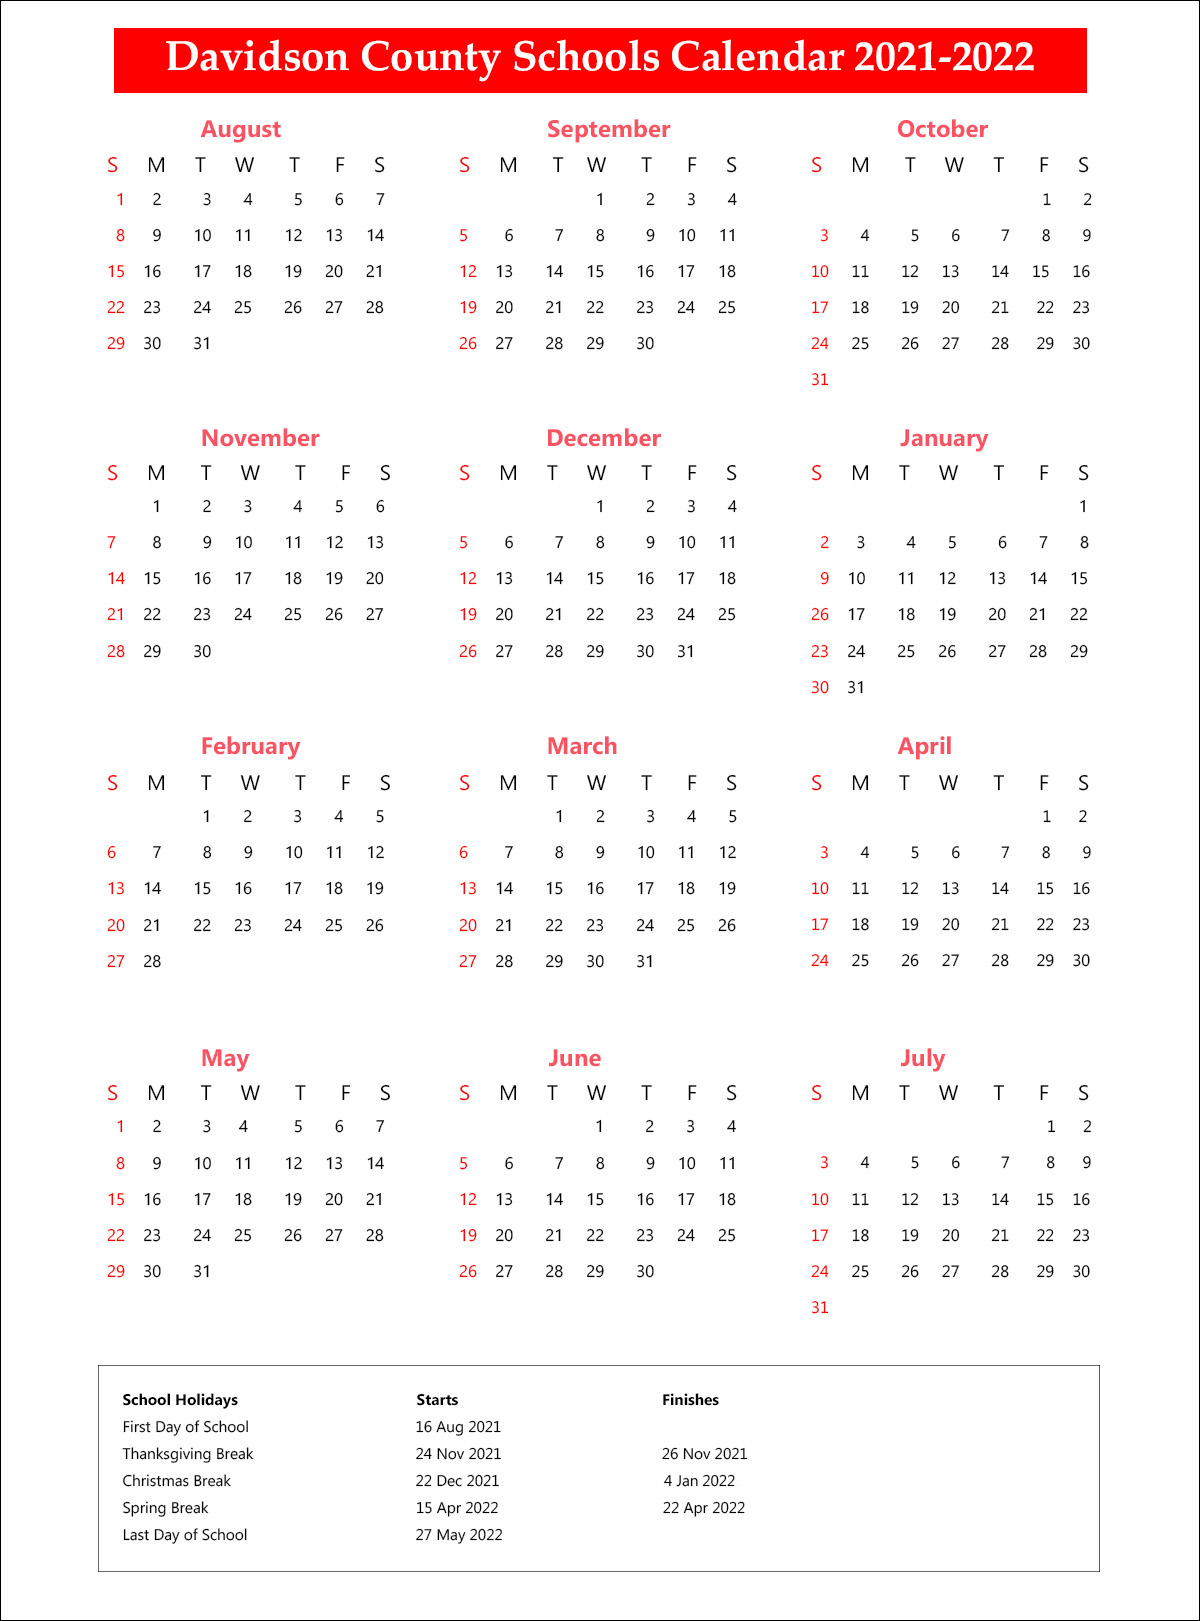 Davidson County Schools District Calendar 2021